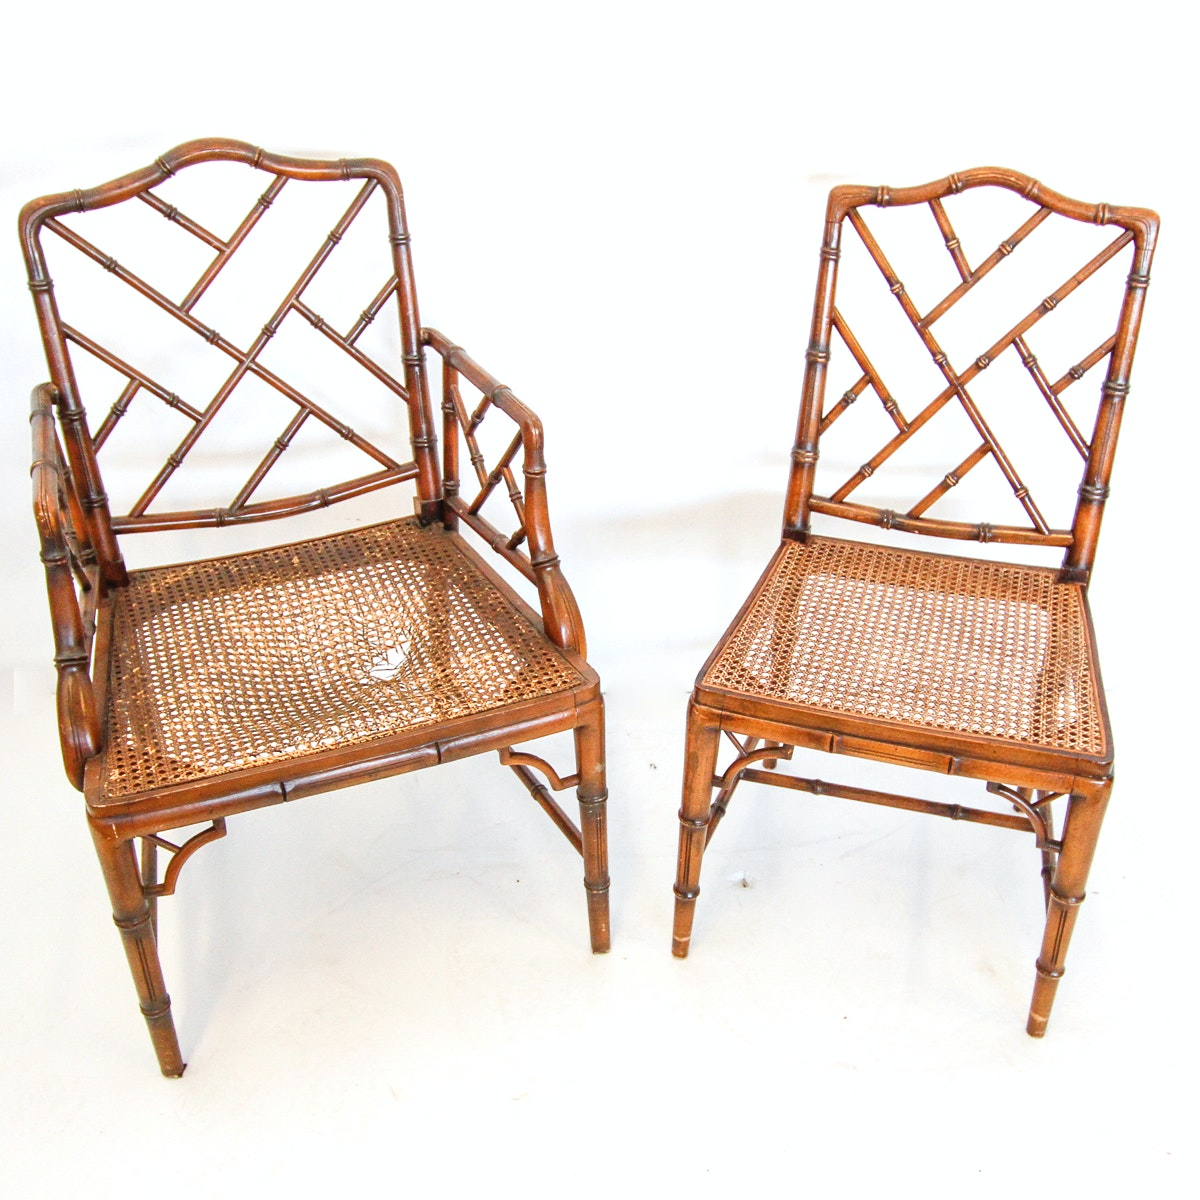 Pair of Bamboo and Rattan Chairs